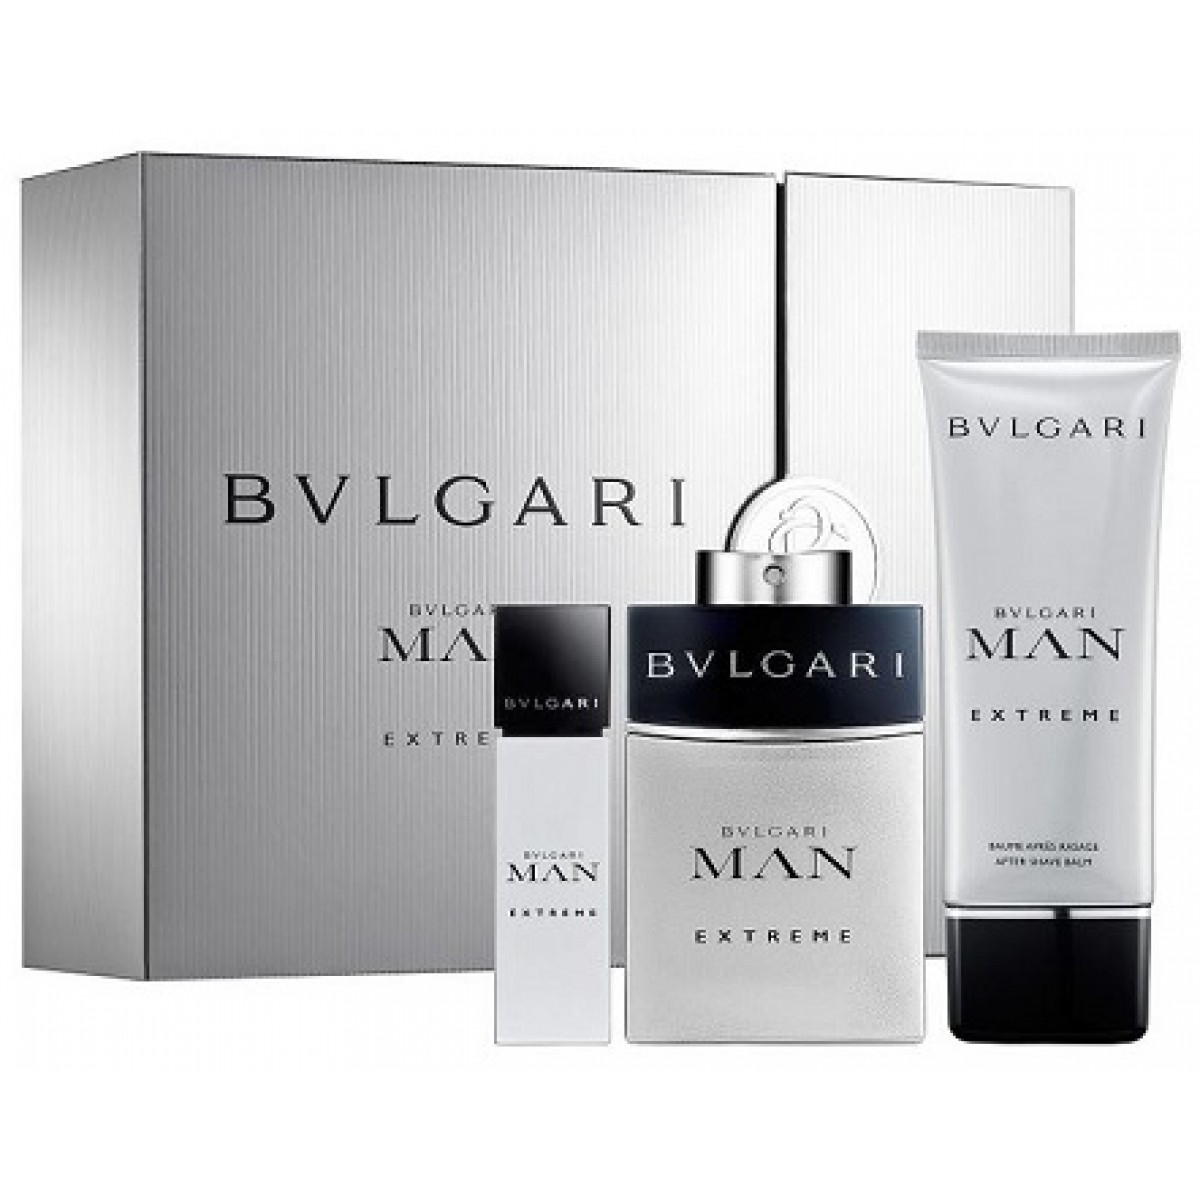 Bvlgari Man Extreme EDT 100ml + EDT 15ml + After Shave Balm 100ml  Gift  Set